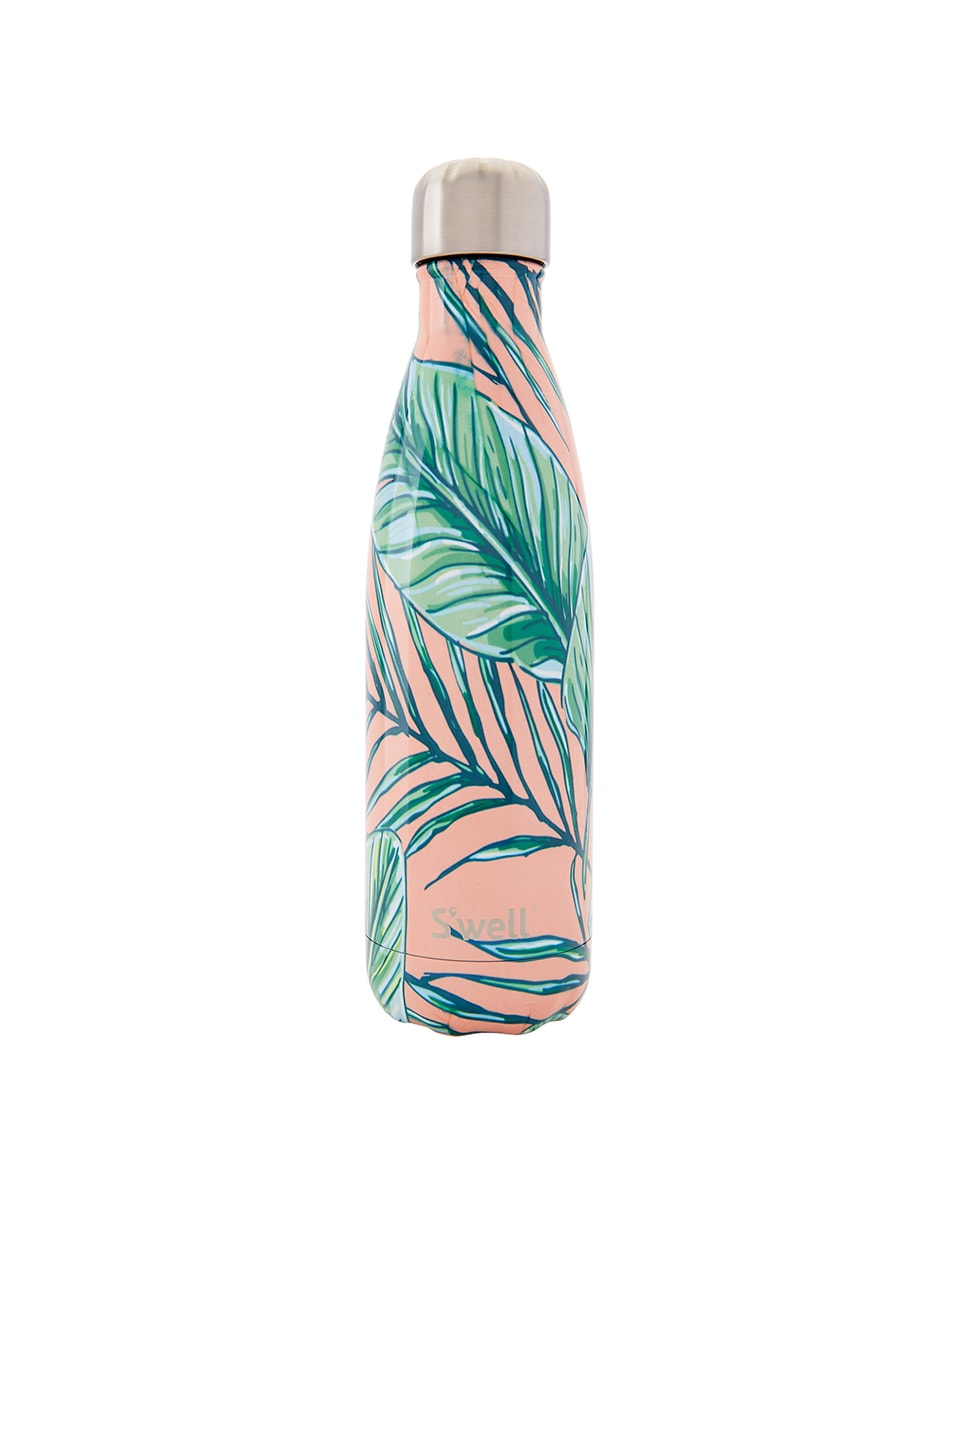 S'well Resort Palm Beach 17oz Water Bottle in Palm Beach